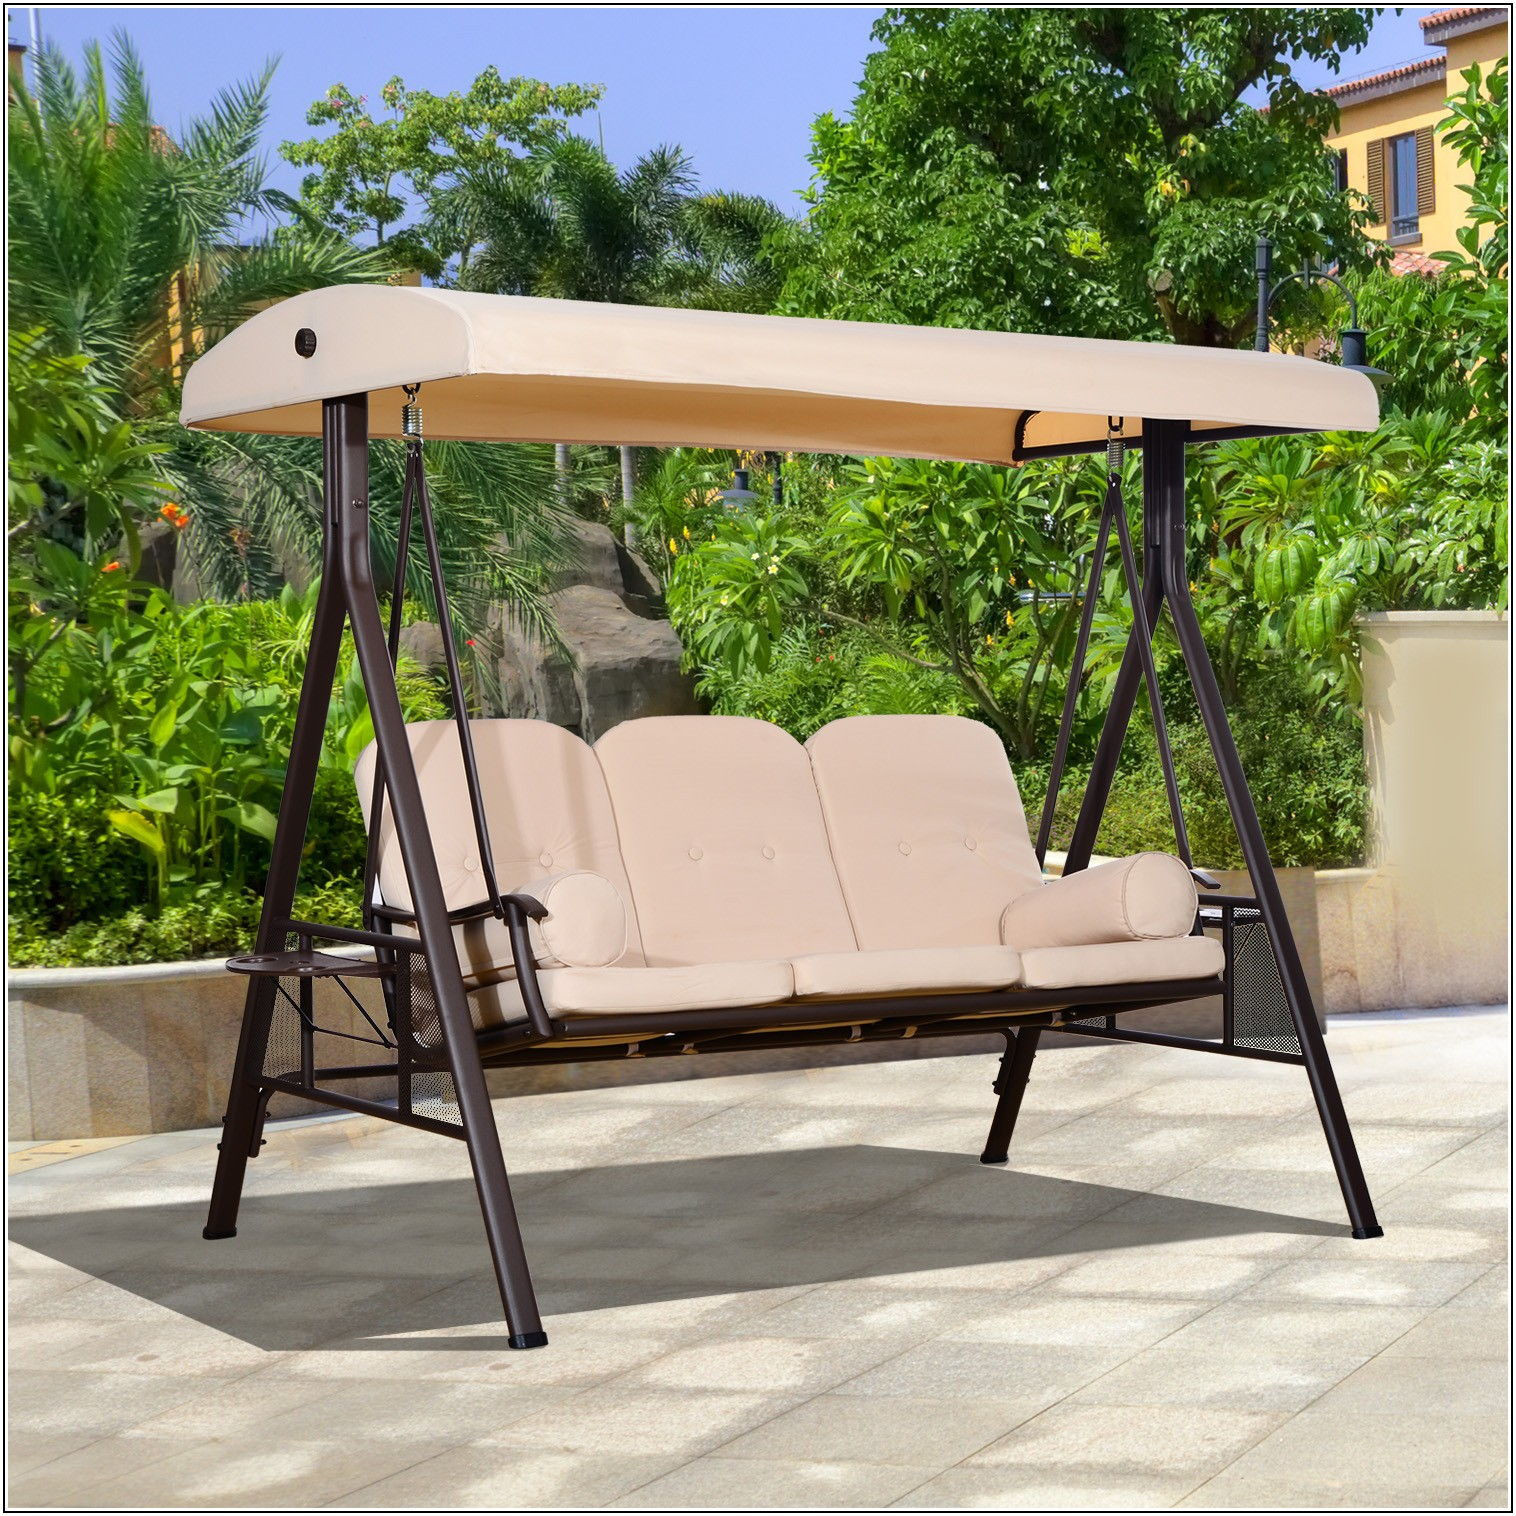 3 Person Cushioned Patio Swing With Canopy